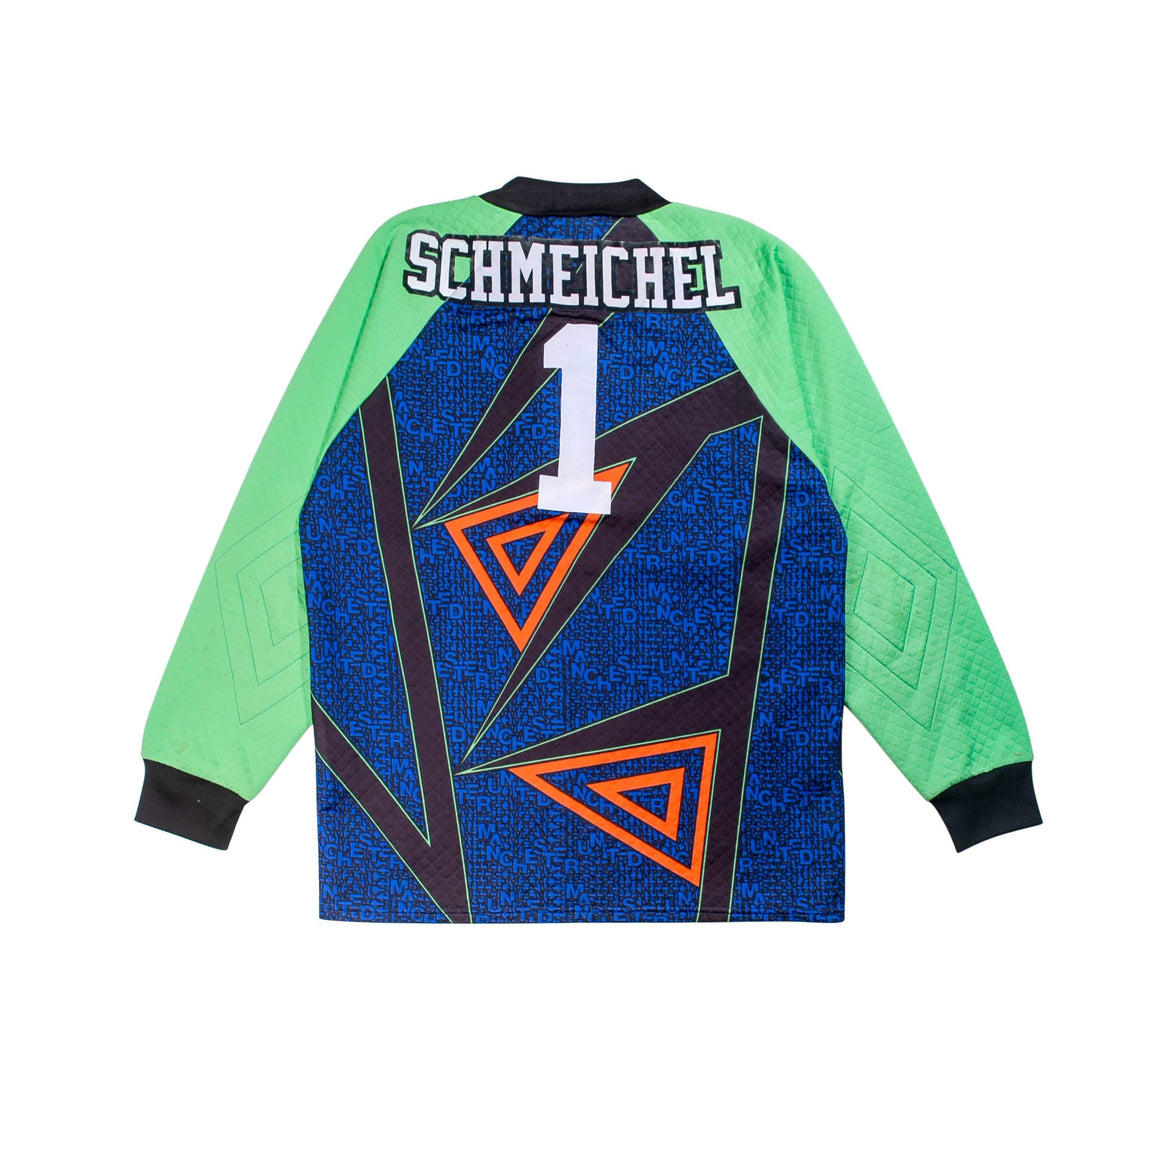 Football Shirt Collective 1994-95 Manchester United Goalie Football Shirt Schmeichel M (Excellent)